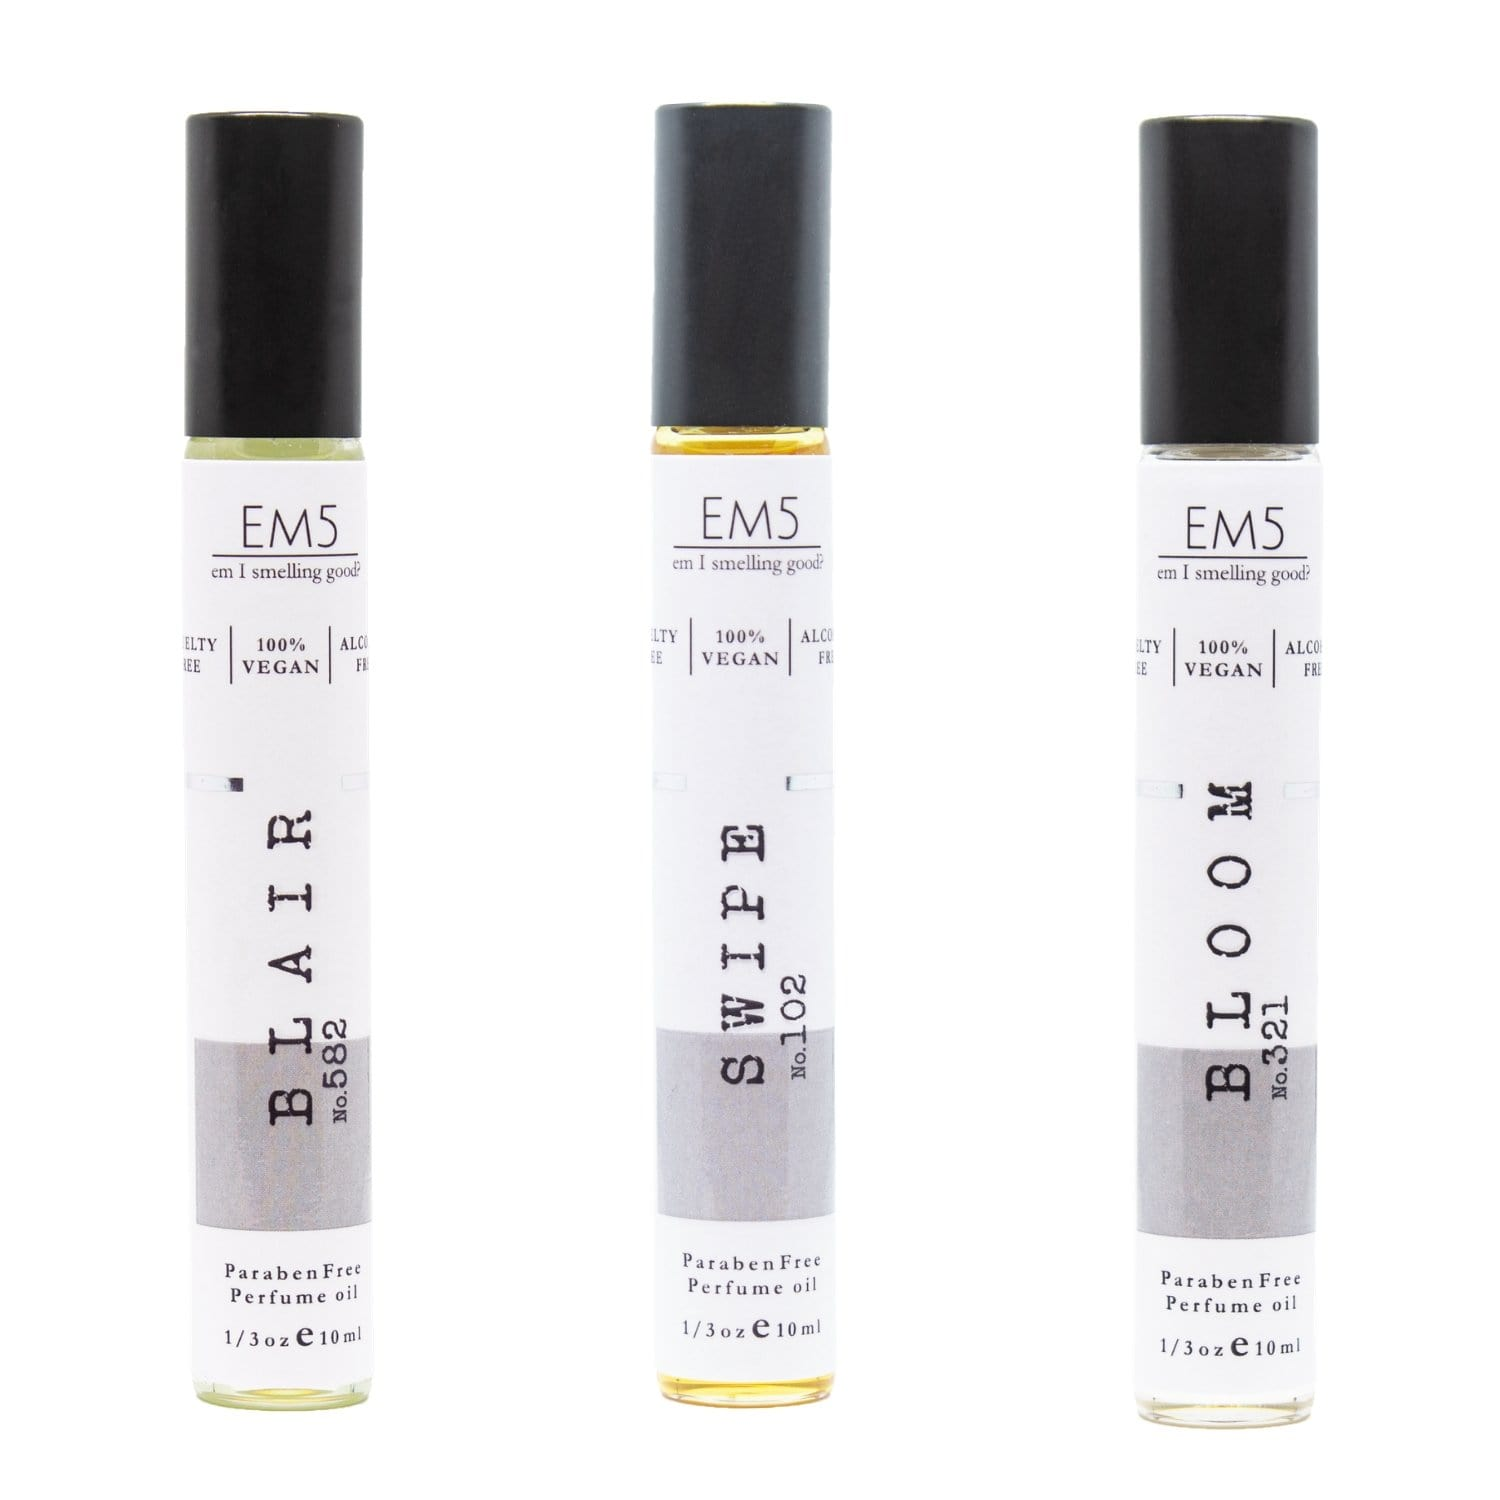 Em5 Premium Roll-ons Combo Set for Women, Inspired from Lavender by Tommme Forrddd | Twillyy De Herimess | Absolutely Bloomngg by Deiorrrr - Pack of 3-1/3oz (10ml) each…